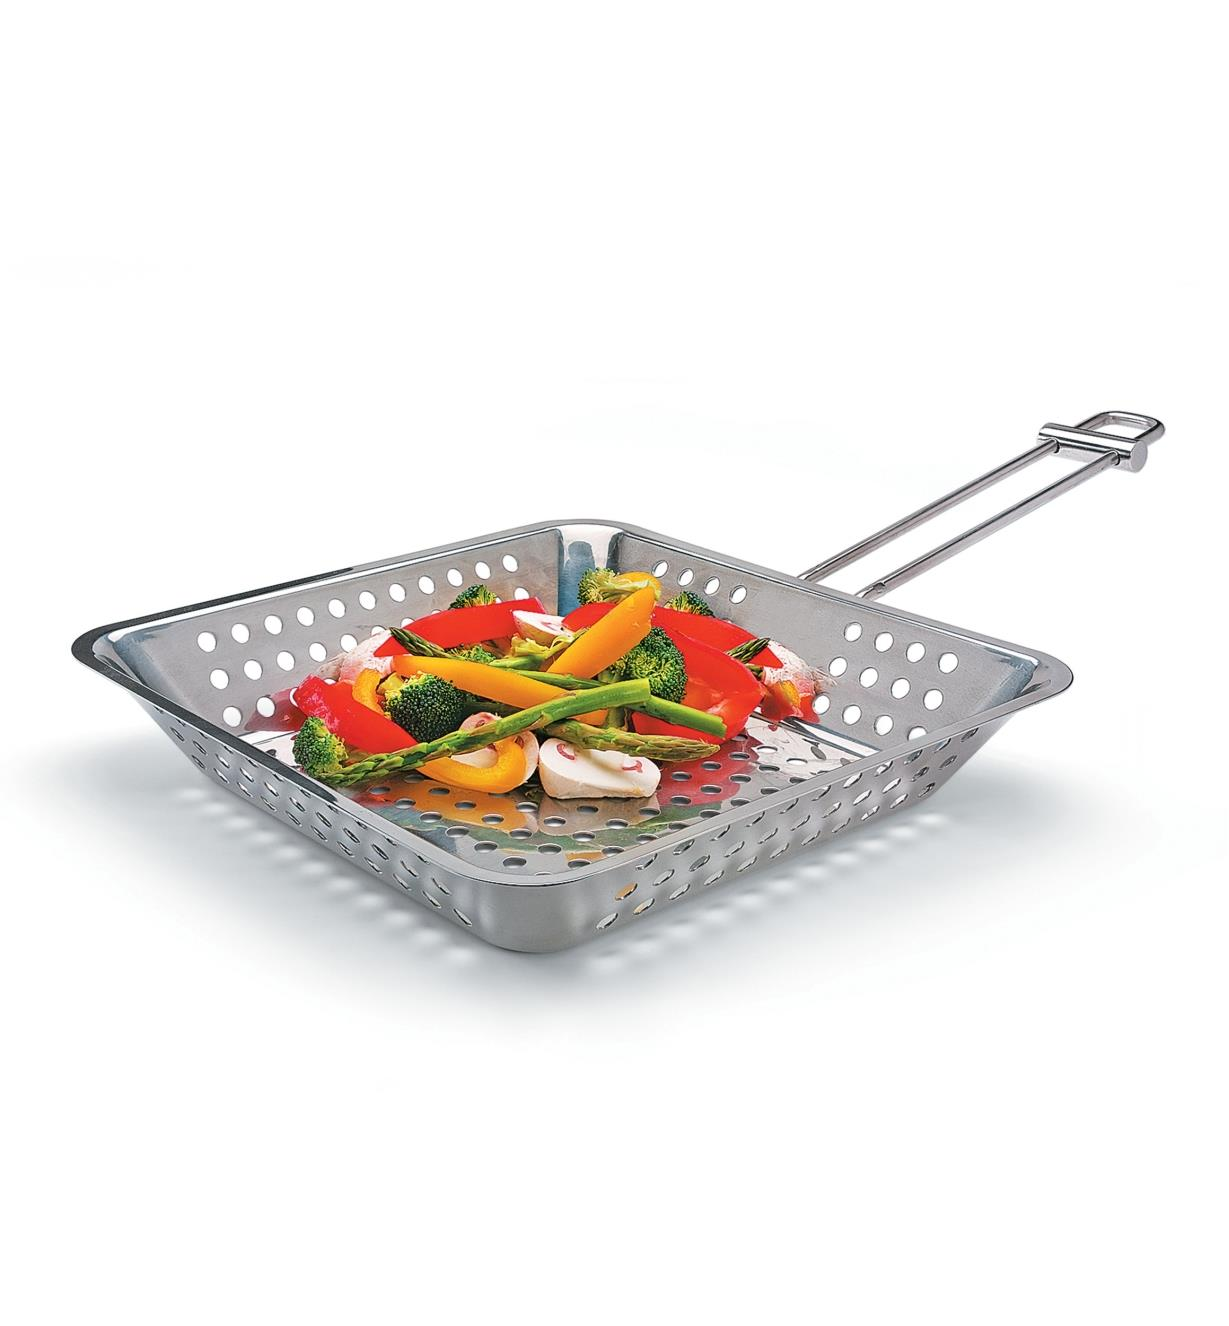 EV275 - Barbecue Grilling Basket